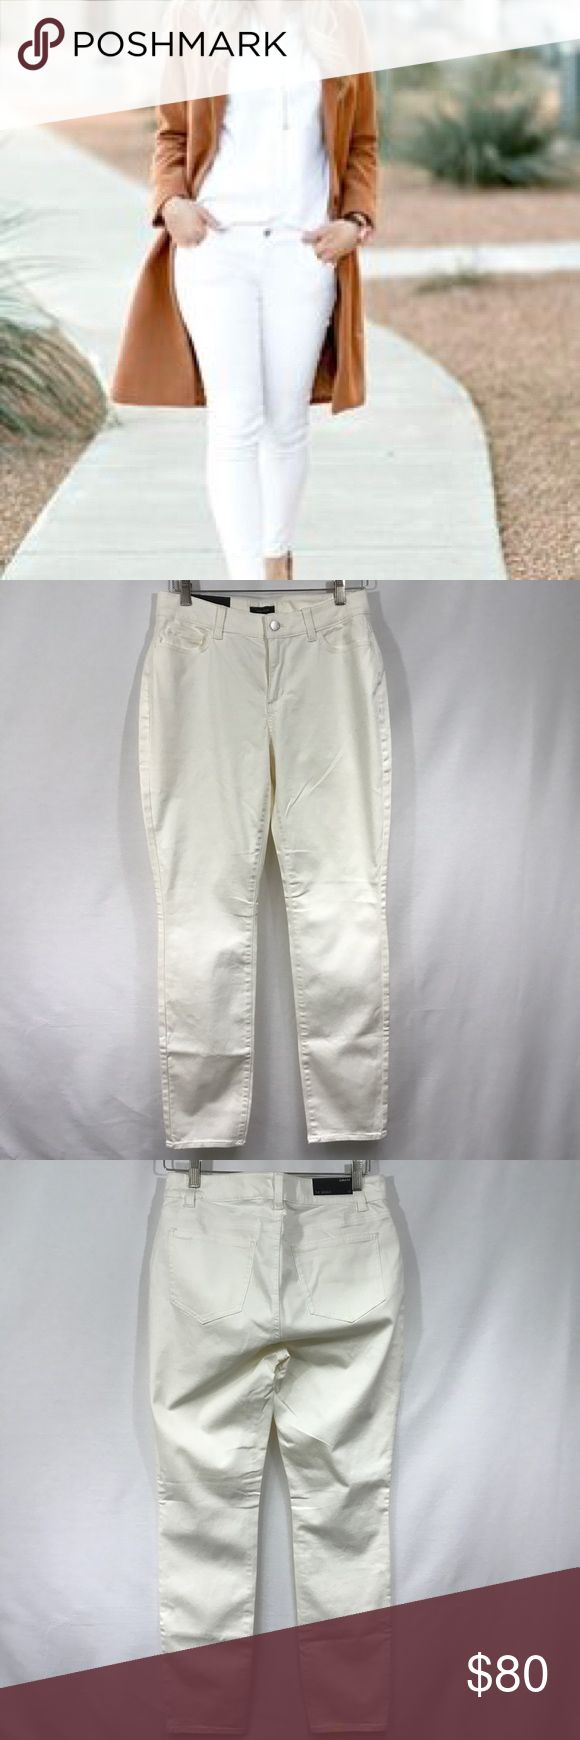 """👓Ann Taylor Curvy Skinny Jeans Sz 10👓 These Ann Taylor pants are the Curvy Skinny fit and are a size 10. They are in the color Whisper White and are NWT -- never worn!! 80% Cotton, 17% rayon, 3% spandex. Measurements approximately: waist 30"""", rise 9.5"""", length 30.5"""". Ann Taylor Pants Skinny"""